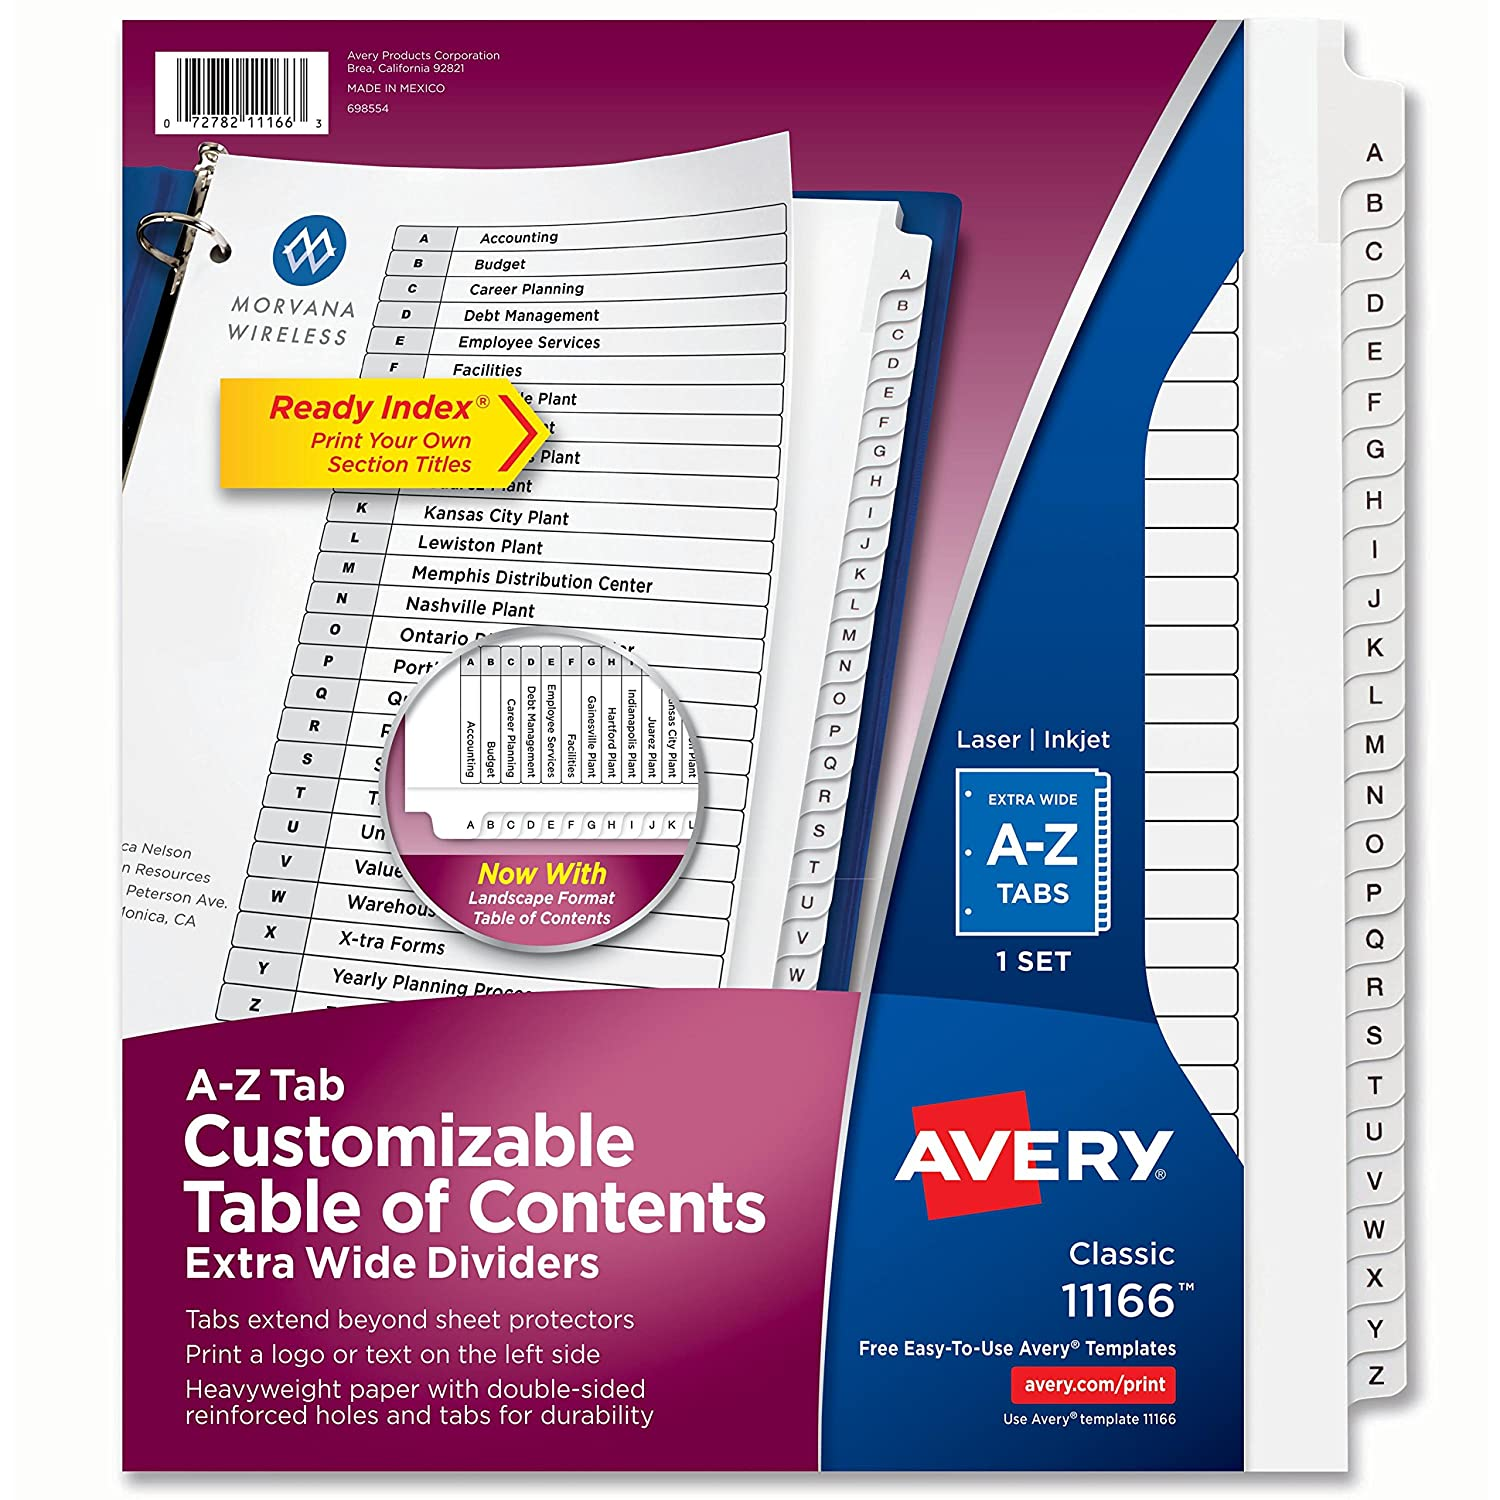 Avery A-Z Extra-Wide 3 Ring Binder Dividers, Customizable Table of Contents, Multicolor Tabs, 1 Set (11166)